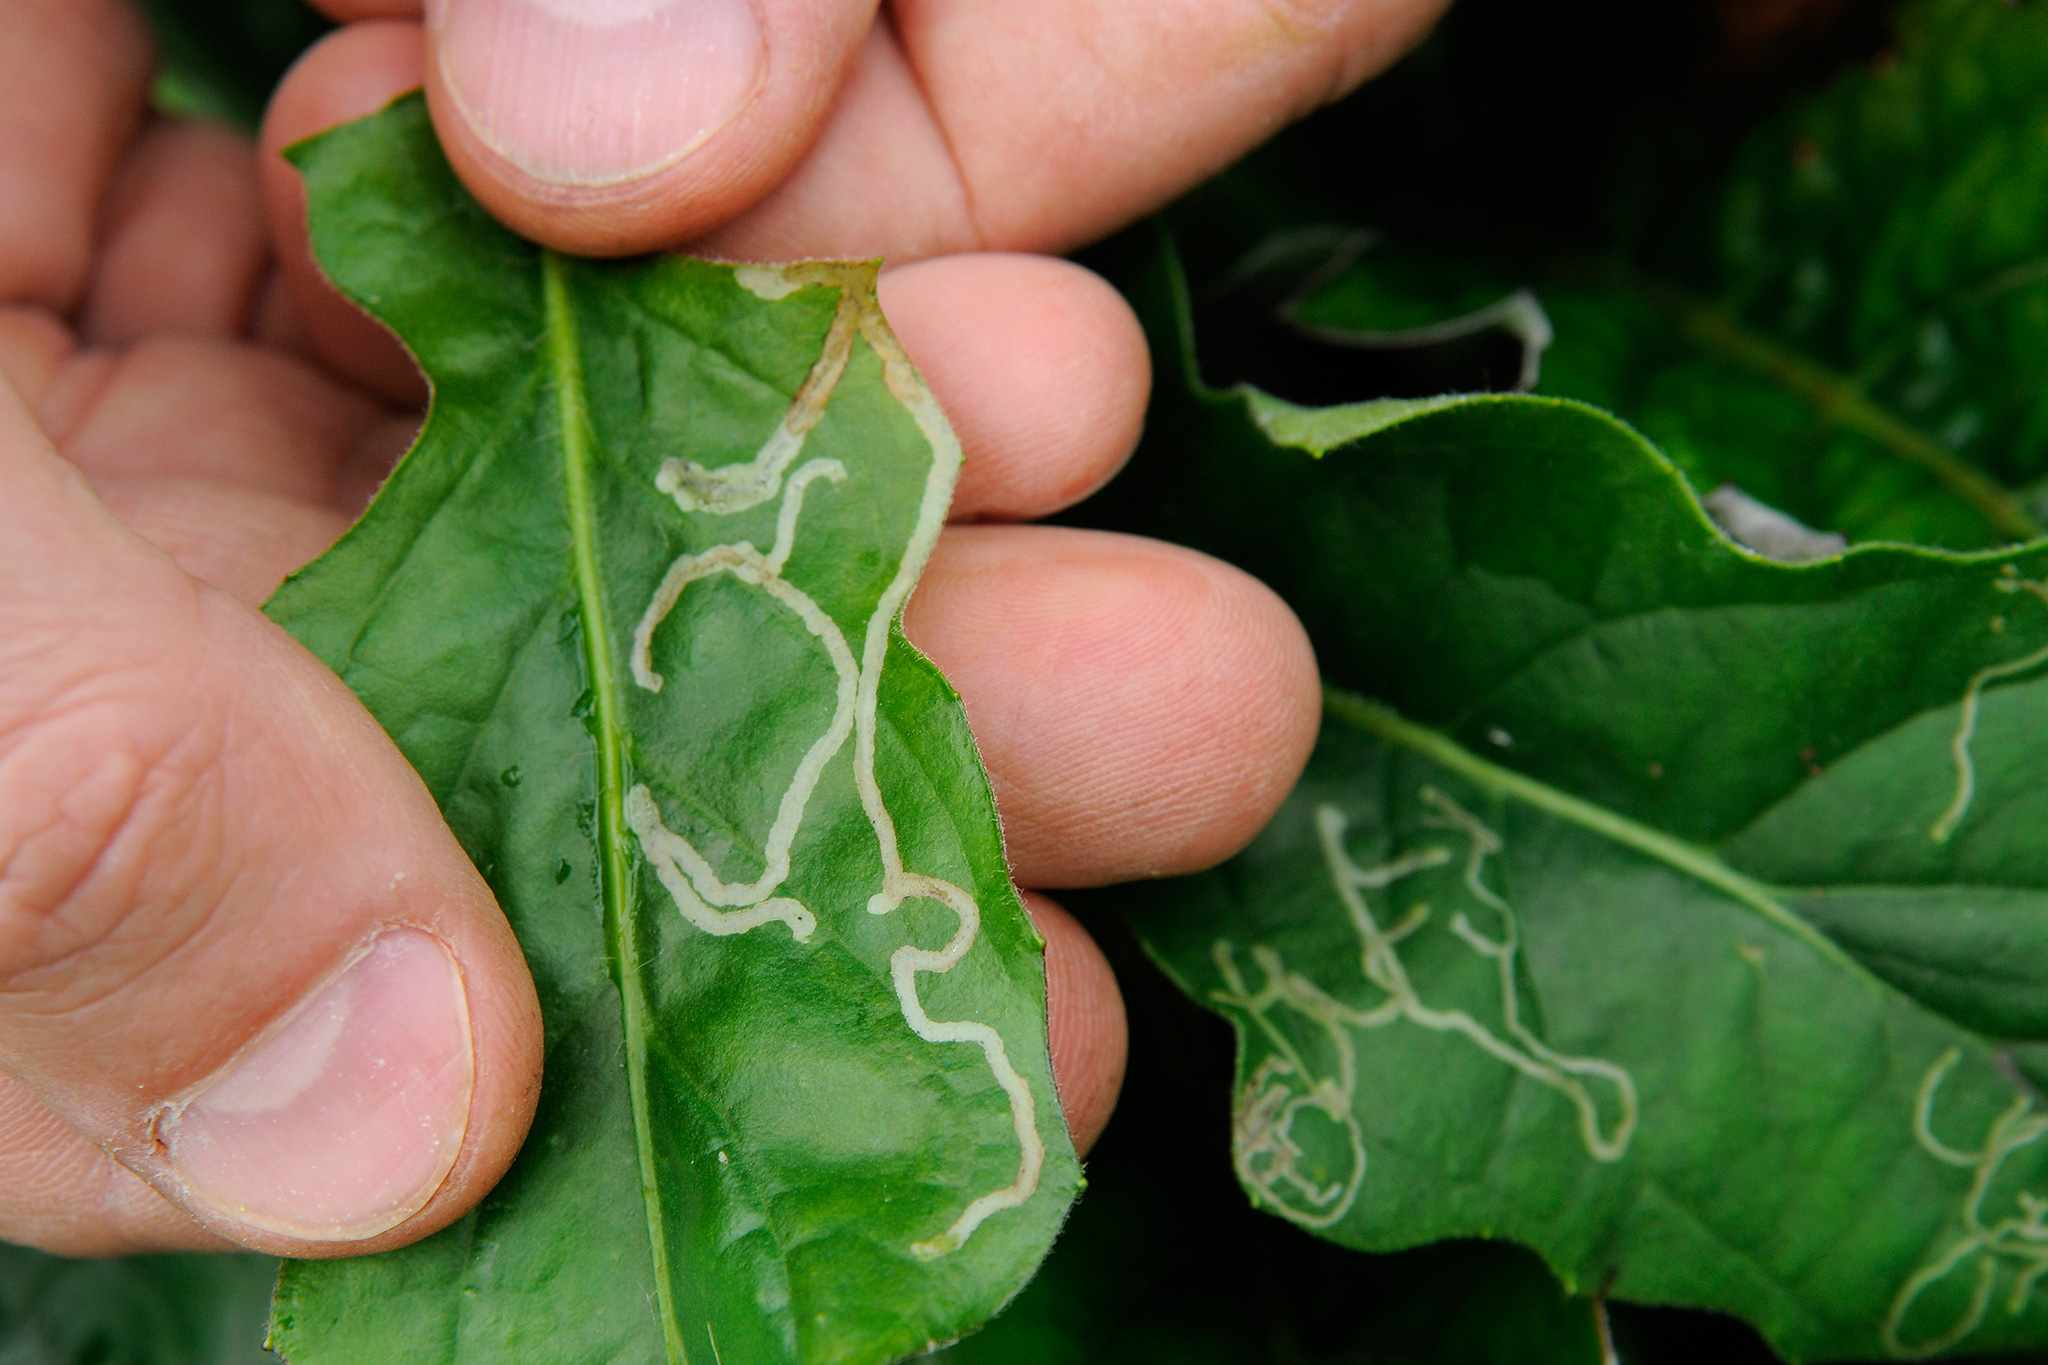 Leaves showing silvery trails caused by burrowing larvae of leaf miner flies